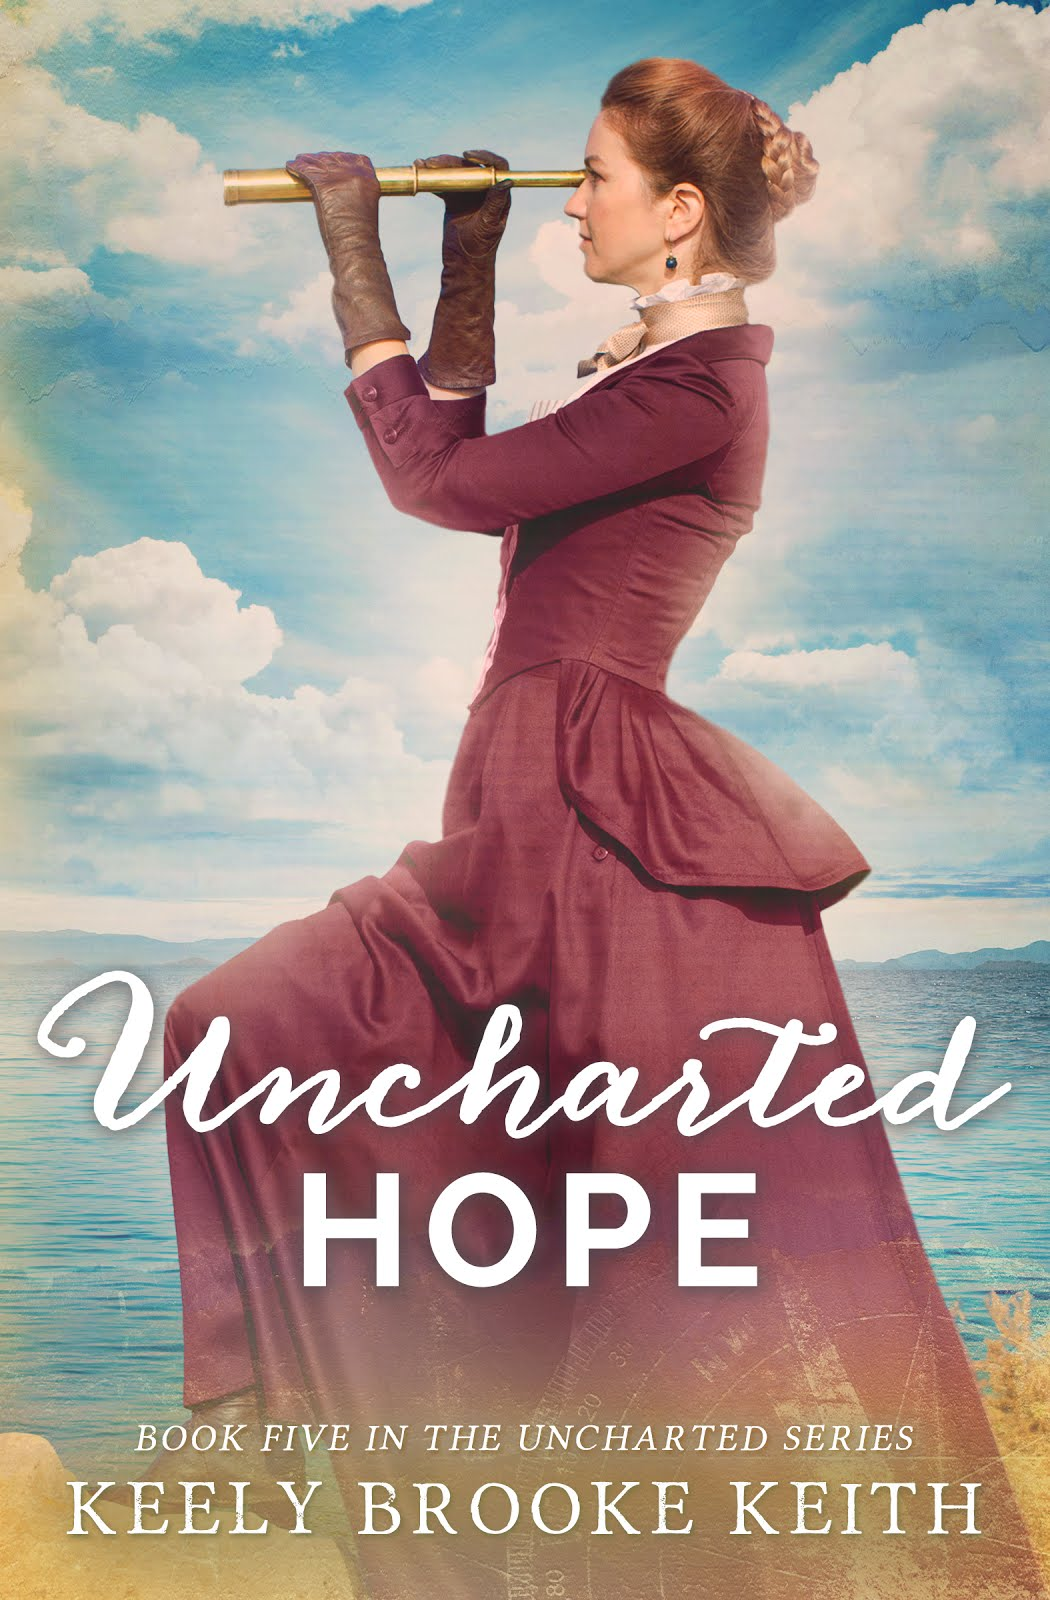 Uncharted Hope (#5)